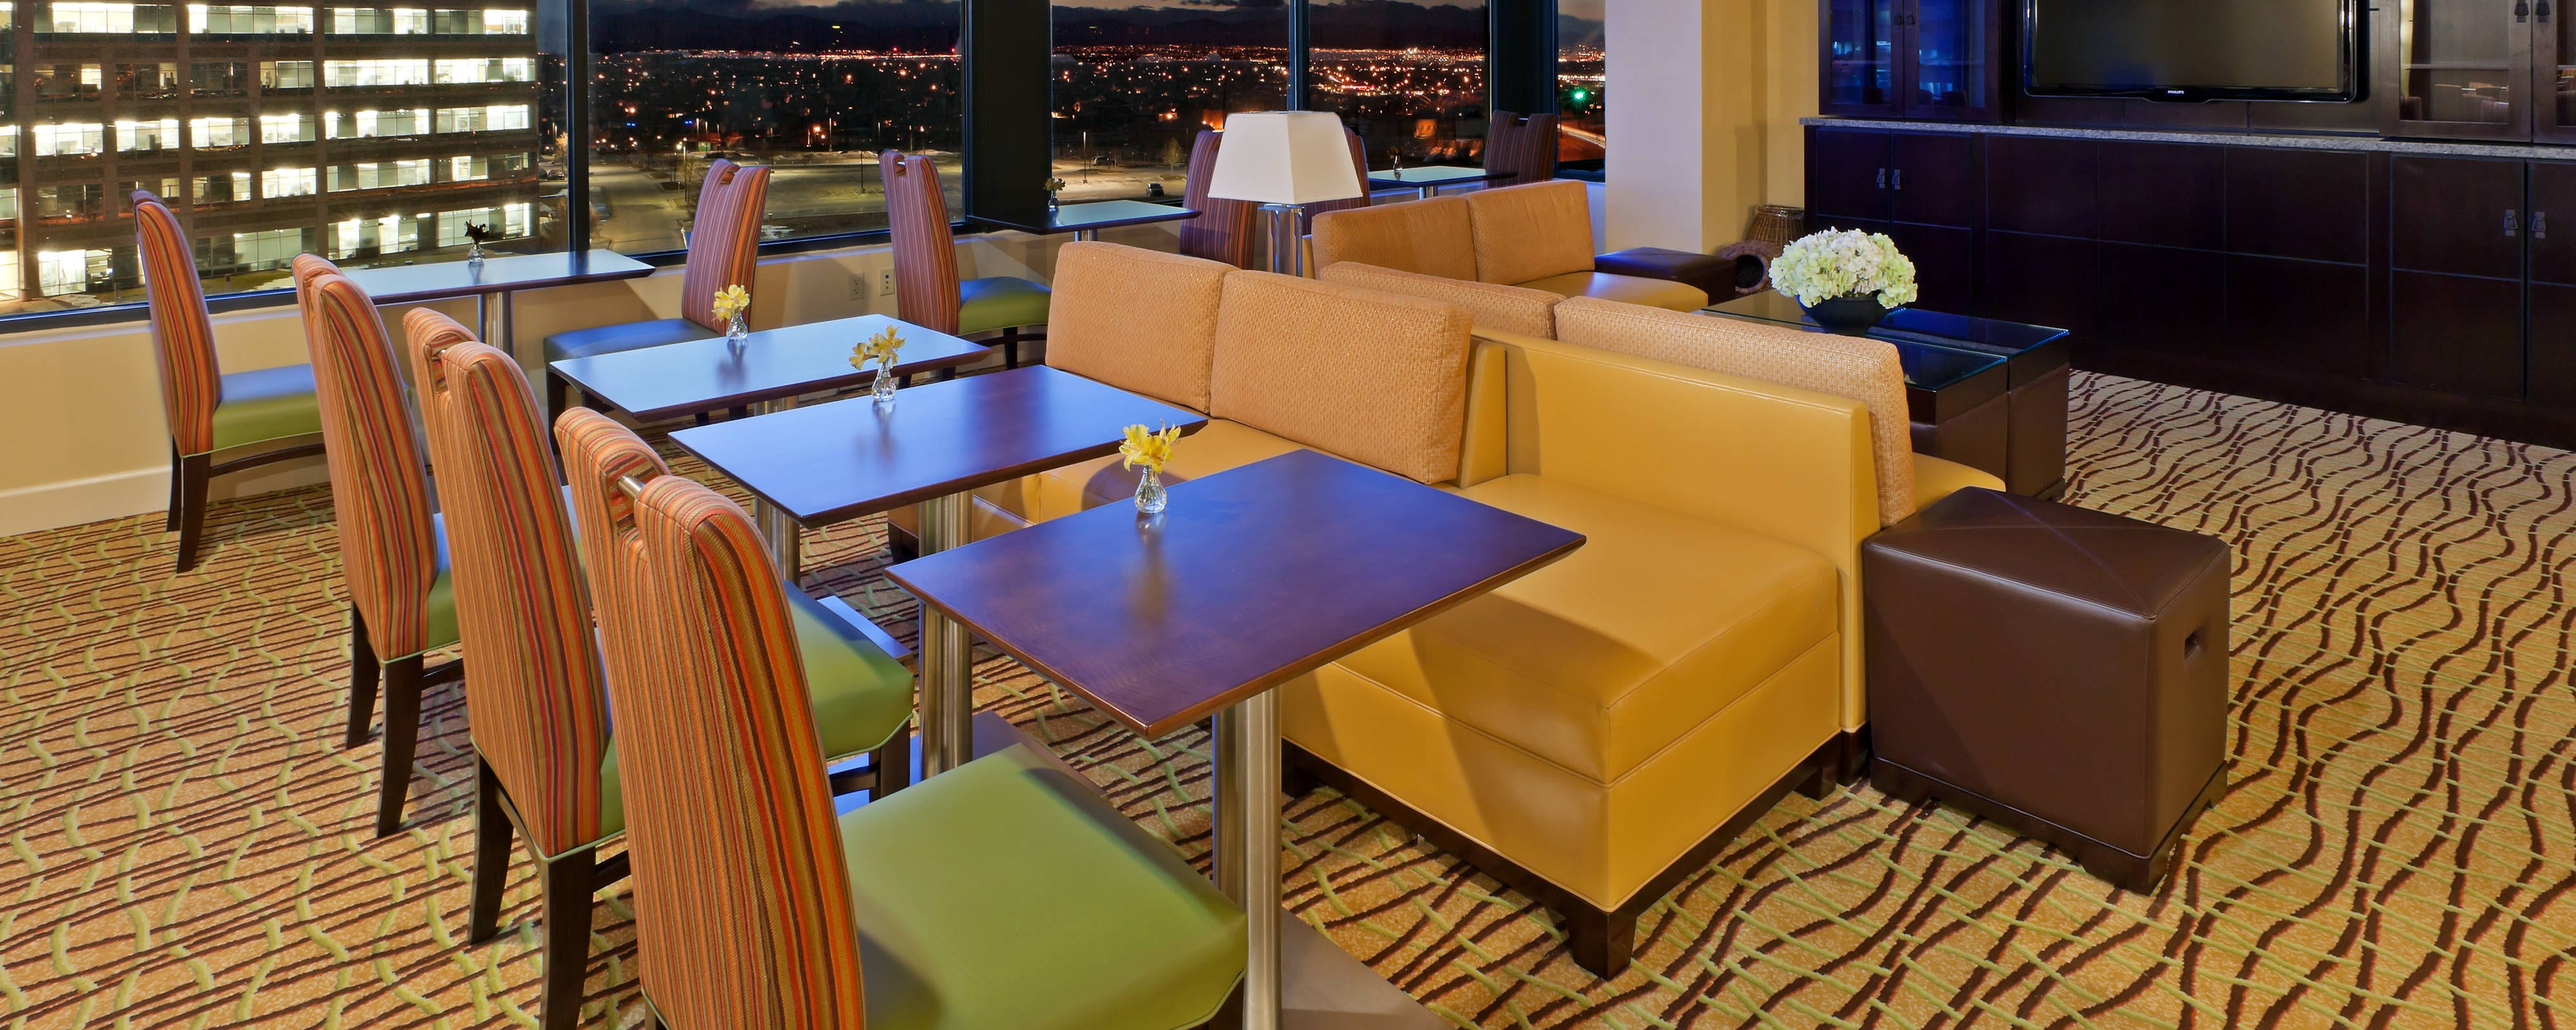 Marriott Denver South Concierge Lounge